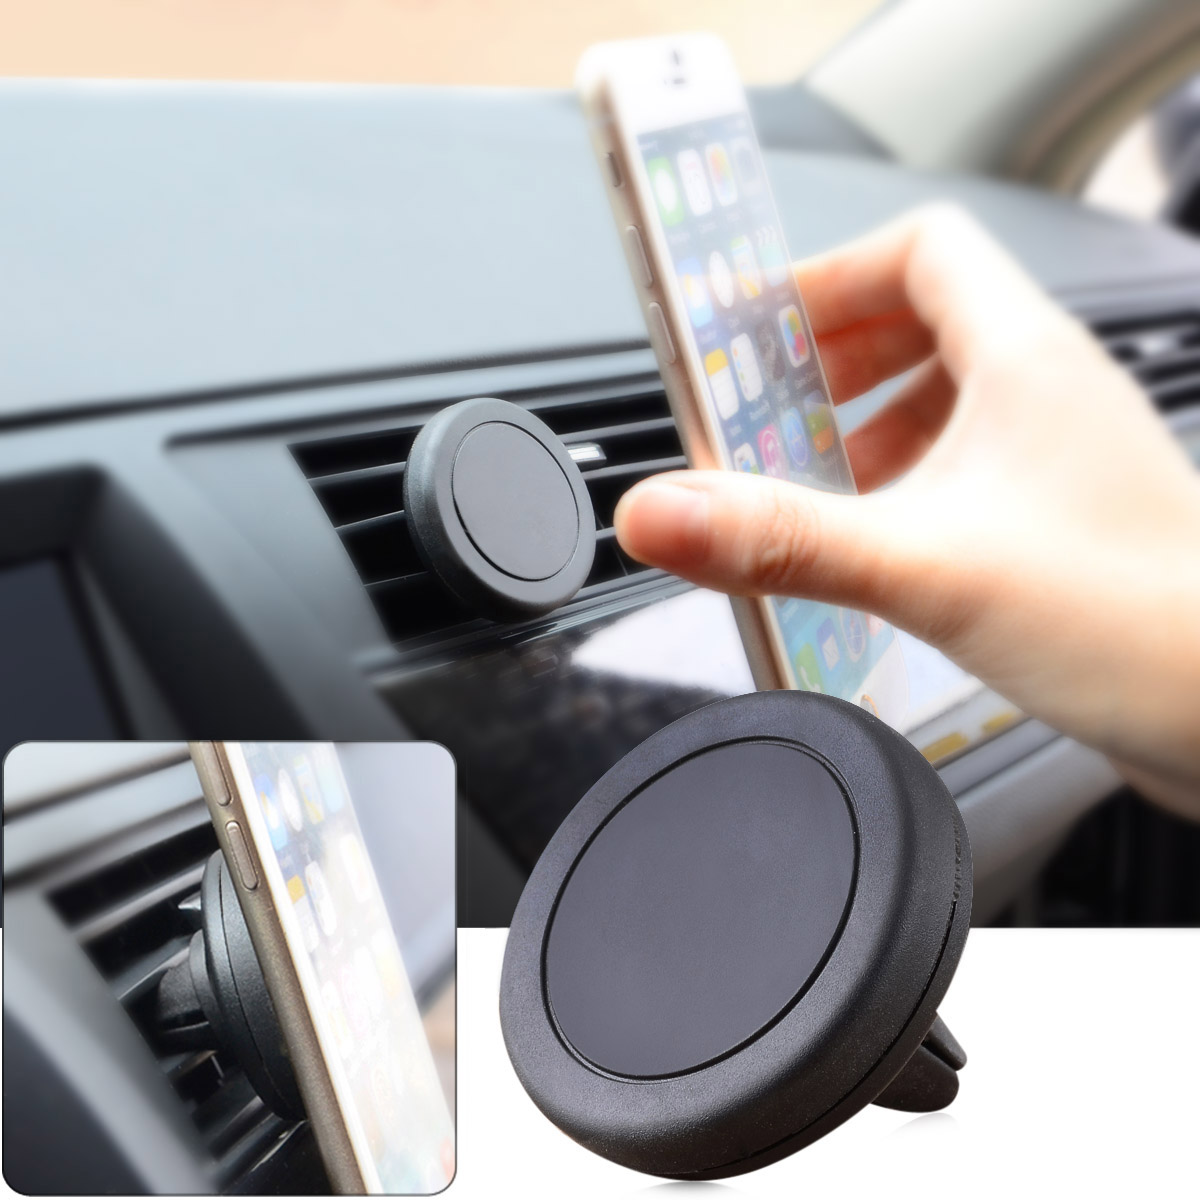 Magnetic Cell Phone Mount >> Universal Xwj 1503 360 Degrees Rotating Magnetic Mobile Phone Mount Car Air Outlet Holder Black